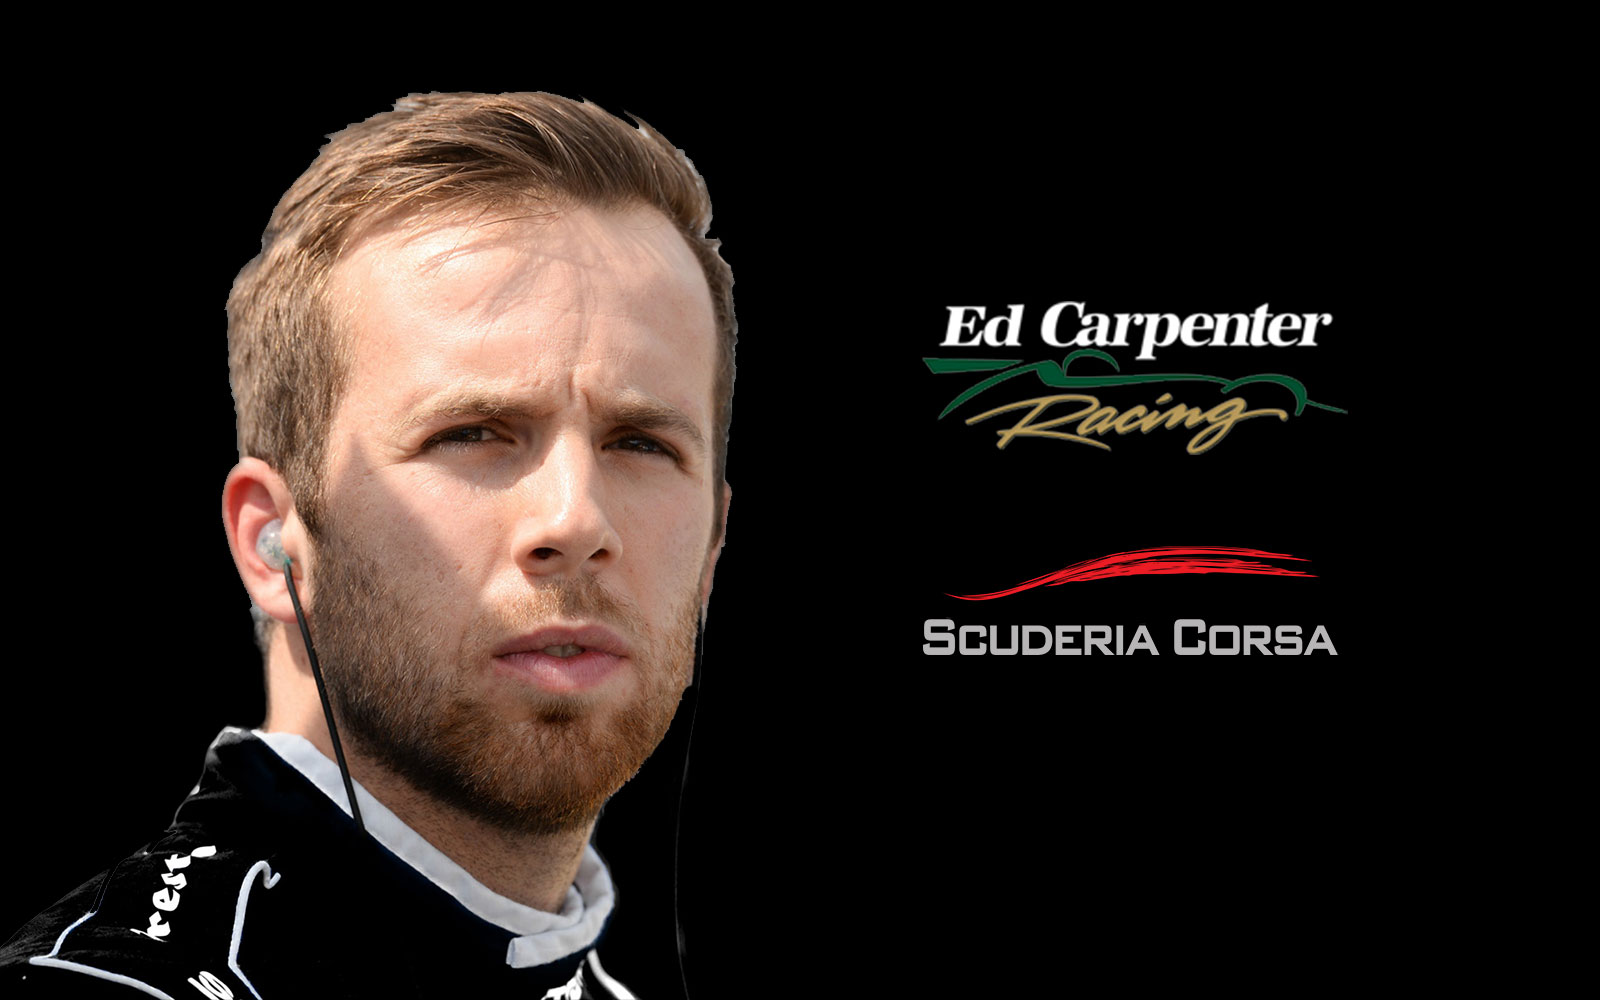 Ed Carpenter Racing & Scuderia Corsa